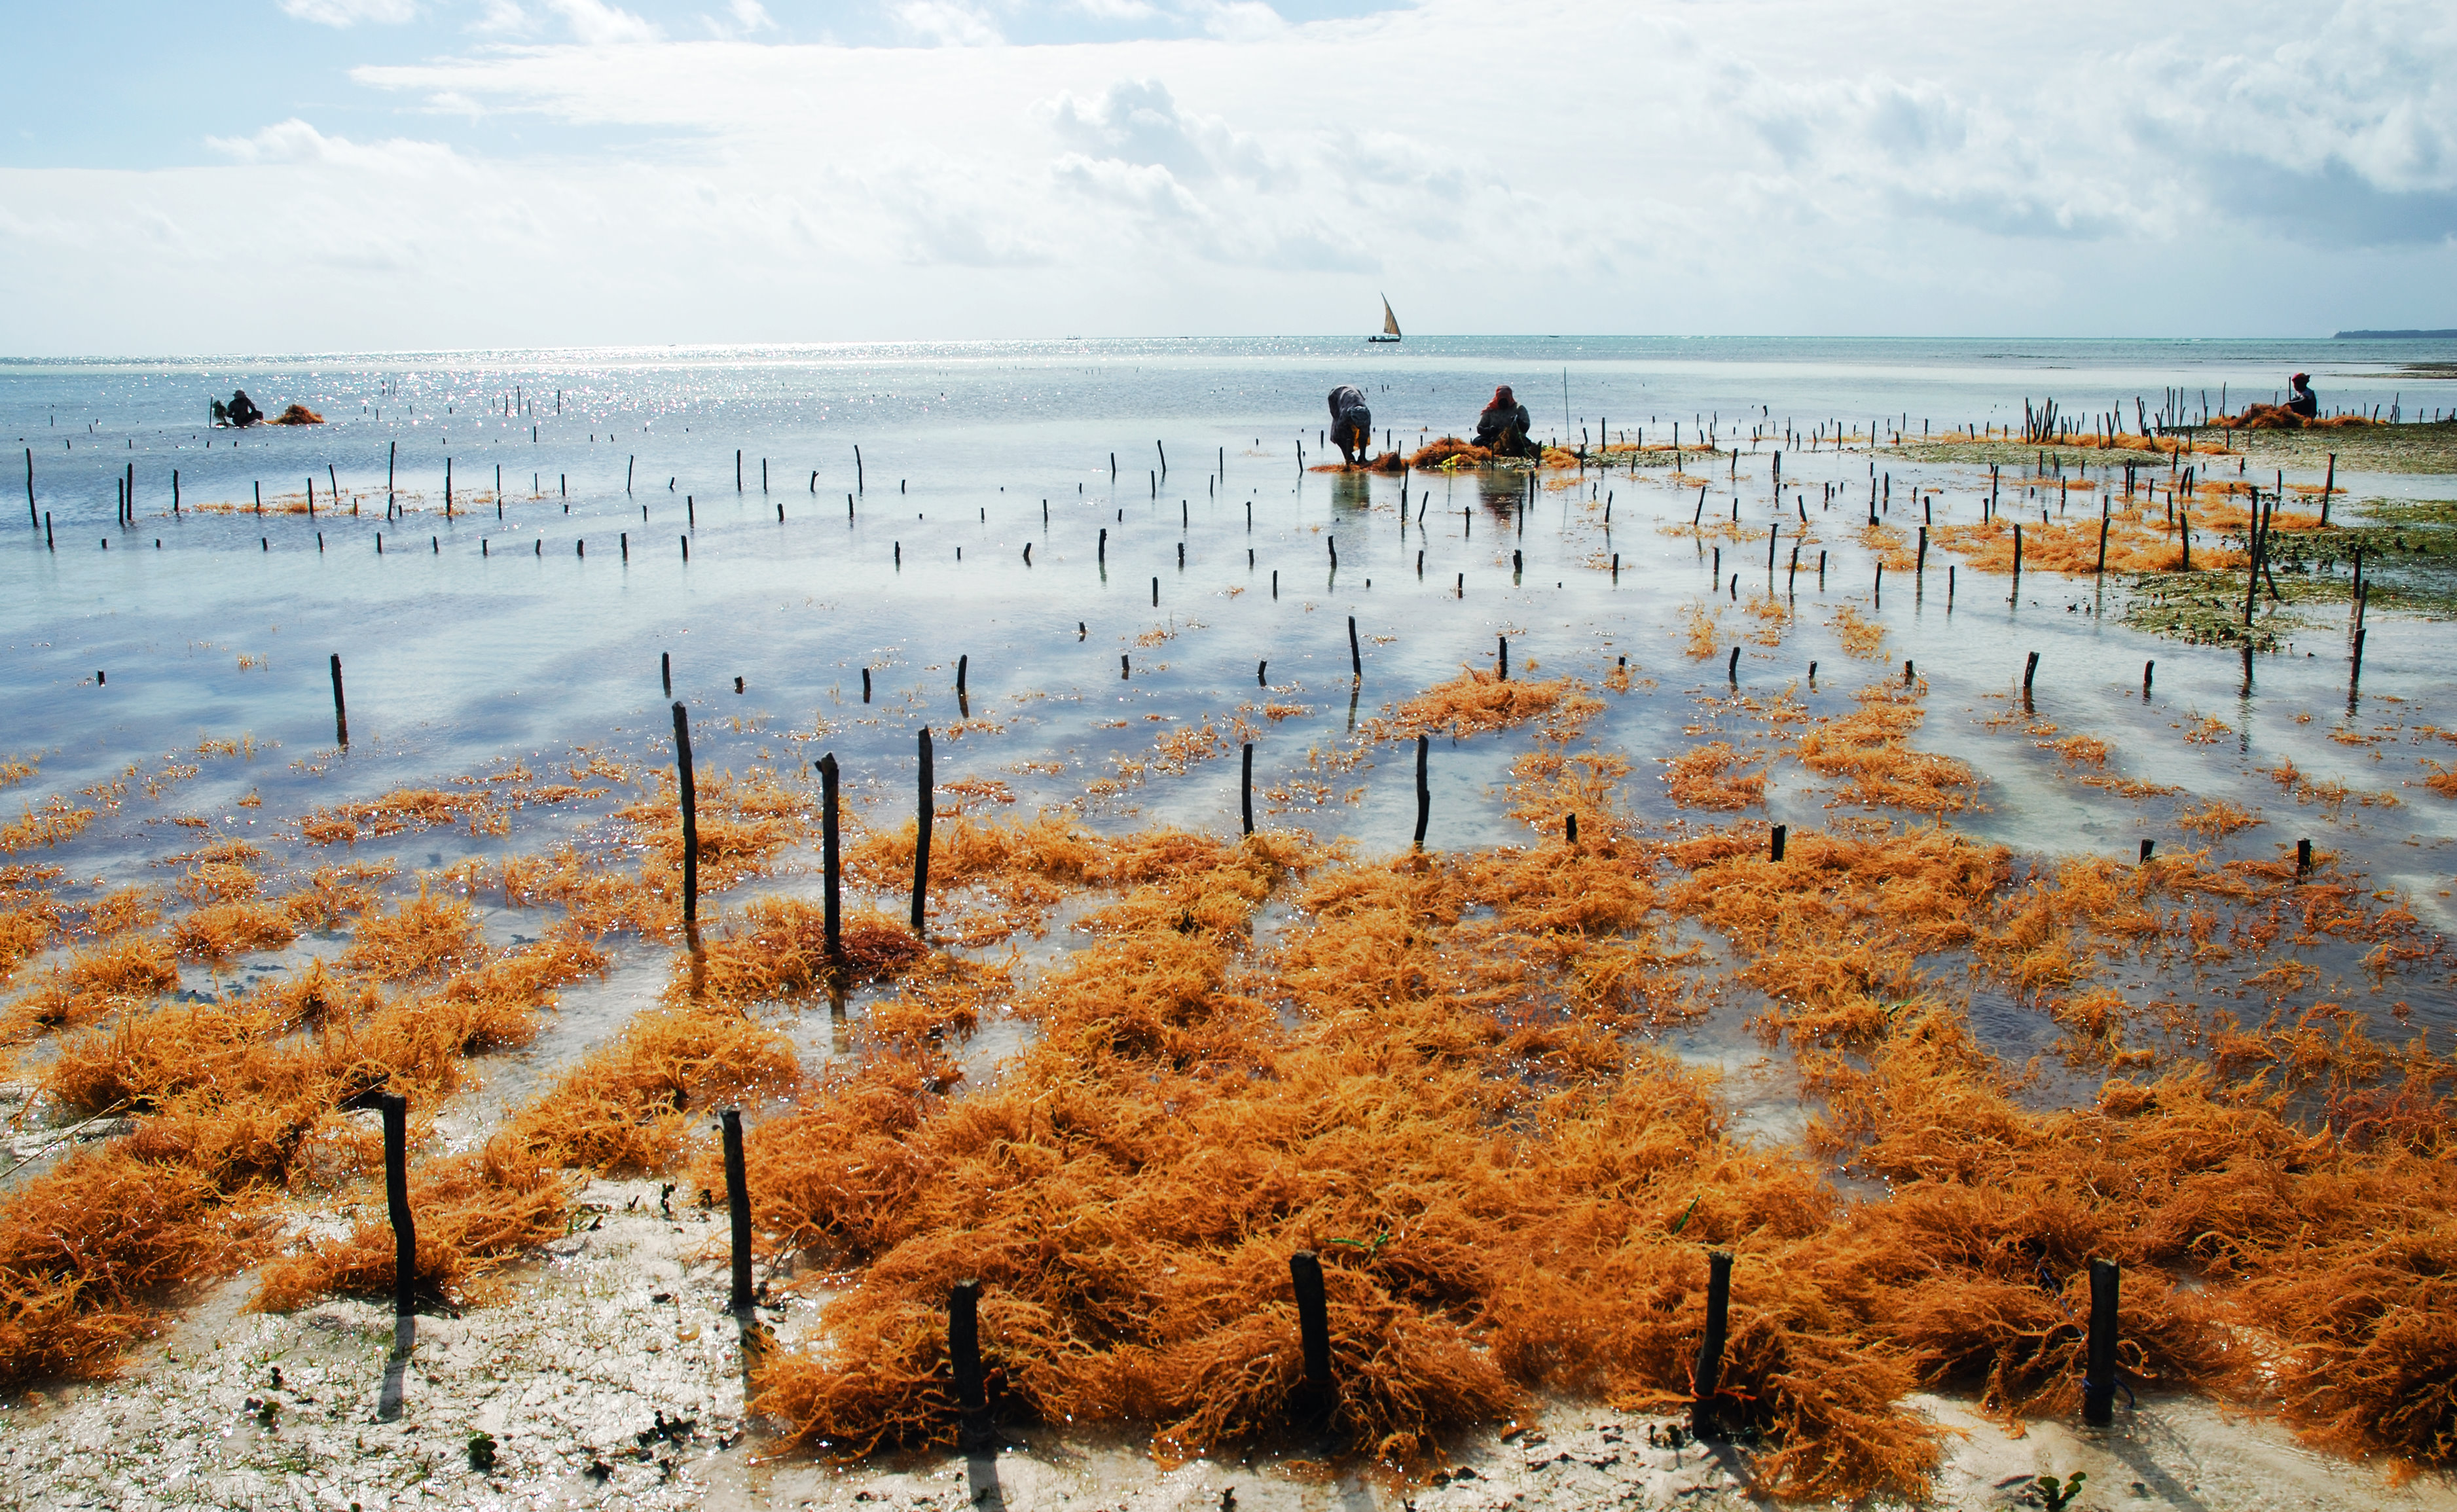 Seaweed farming at Uroa, a fishermen village in Zanzibar. Credit: Moongateclimber (Own work) [Public domain], via Wikimedia Commons